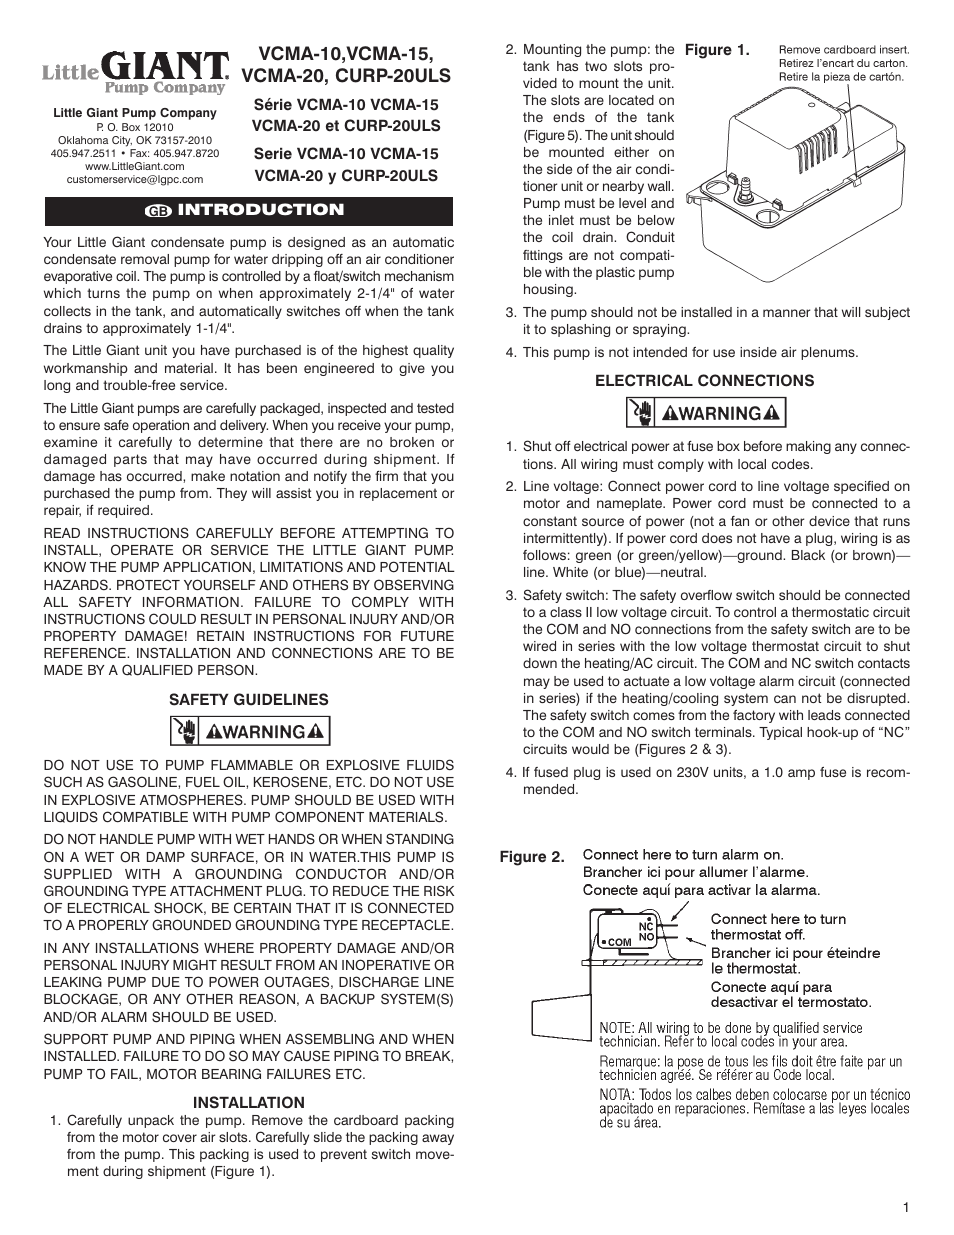 little giant ladder curp 20uls page1 little giant ladder curp 20uls user manual 8 pages also for wiring diagram for little giant pump at readyjetset.co